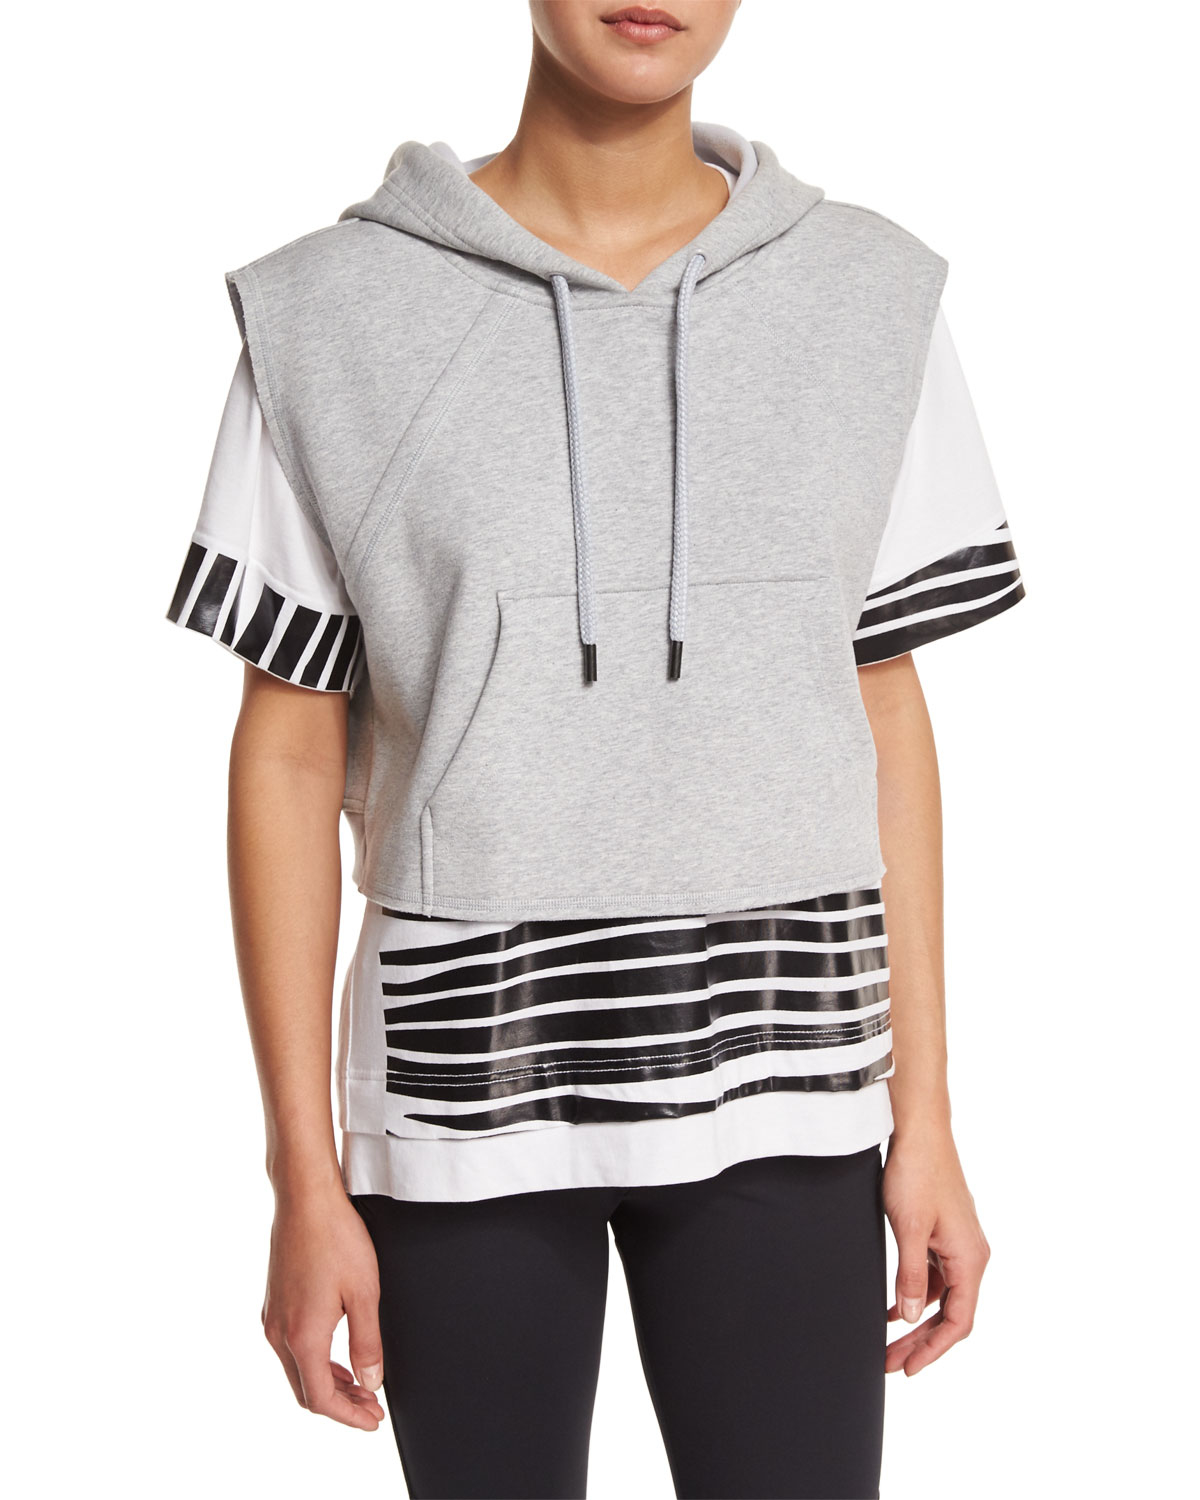 finest selection 8581d d2d7c Lyst - adidas By Stella McCartney Yoga Sleeveless Cropped Hoodie in ...